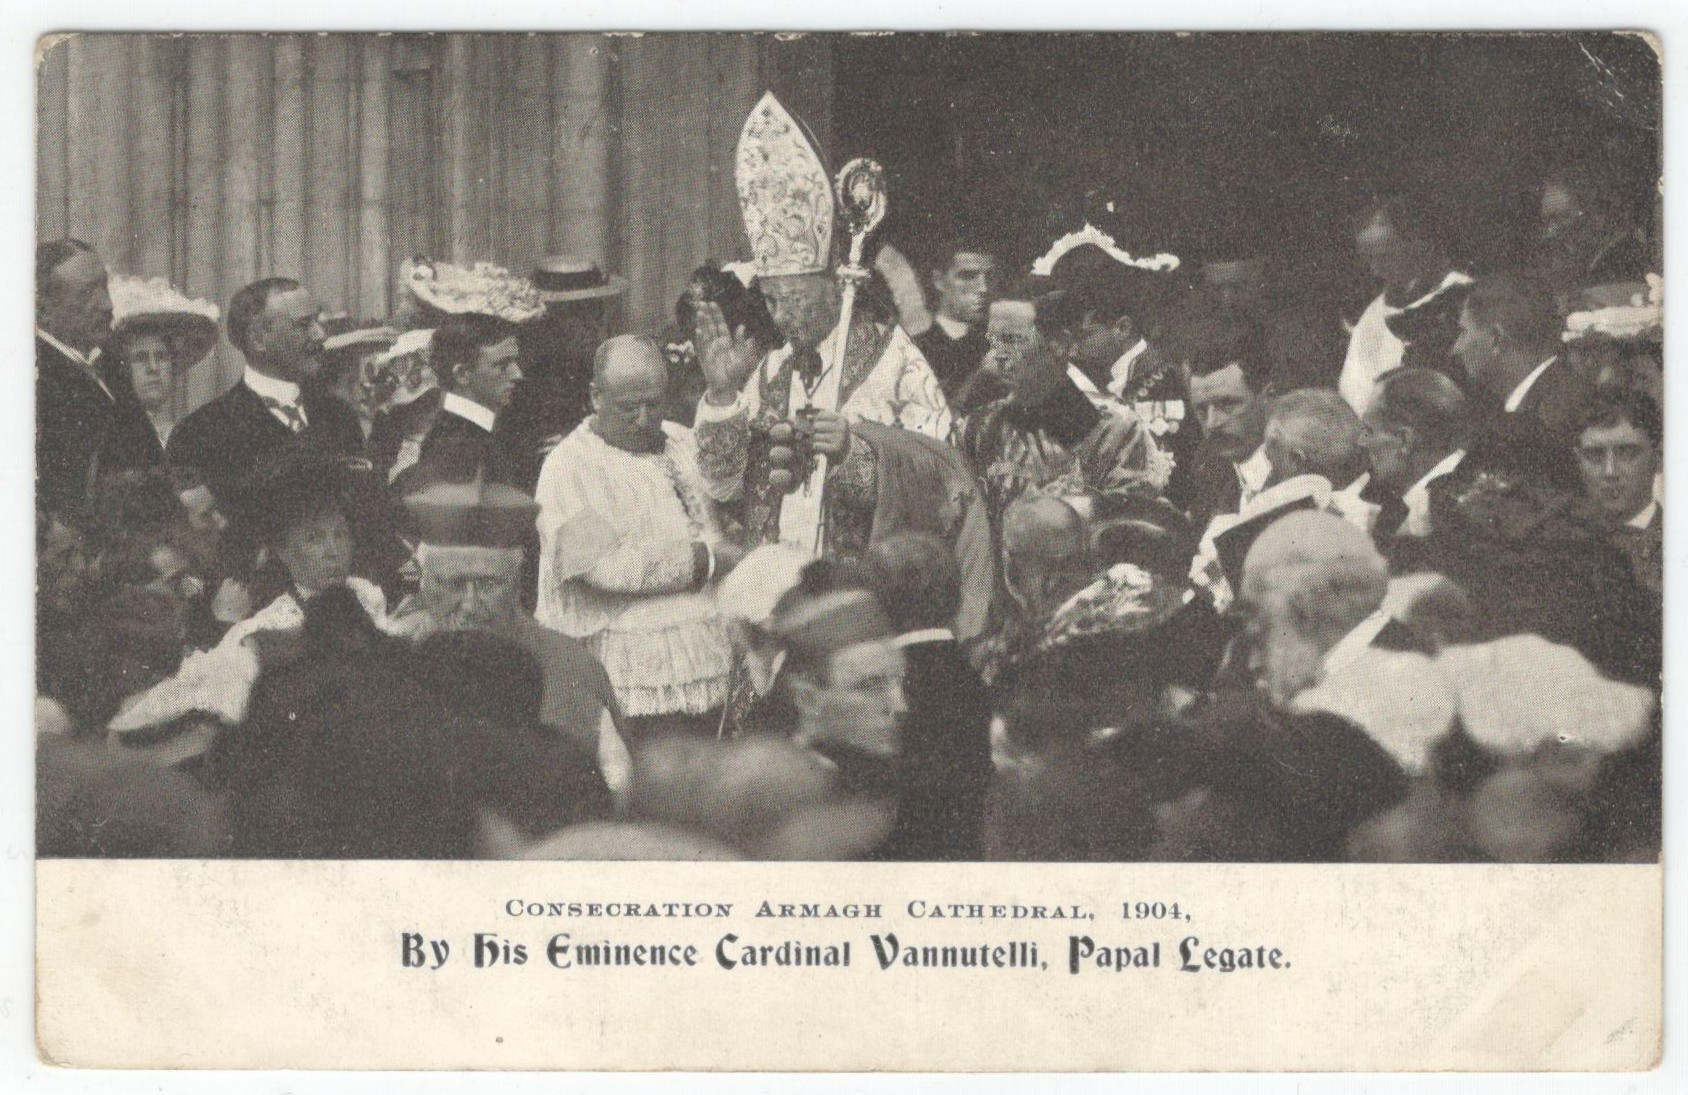 Lot 85 - CONSECRATION ARMAGH CATHEDRAL 1904 BY HIS EMINENCE CARDINAL VANNUTELLI PAPAL LEGATE